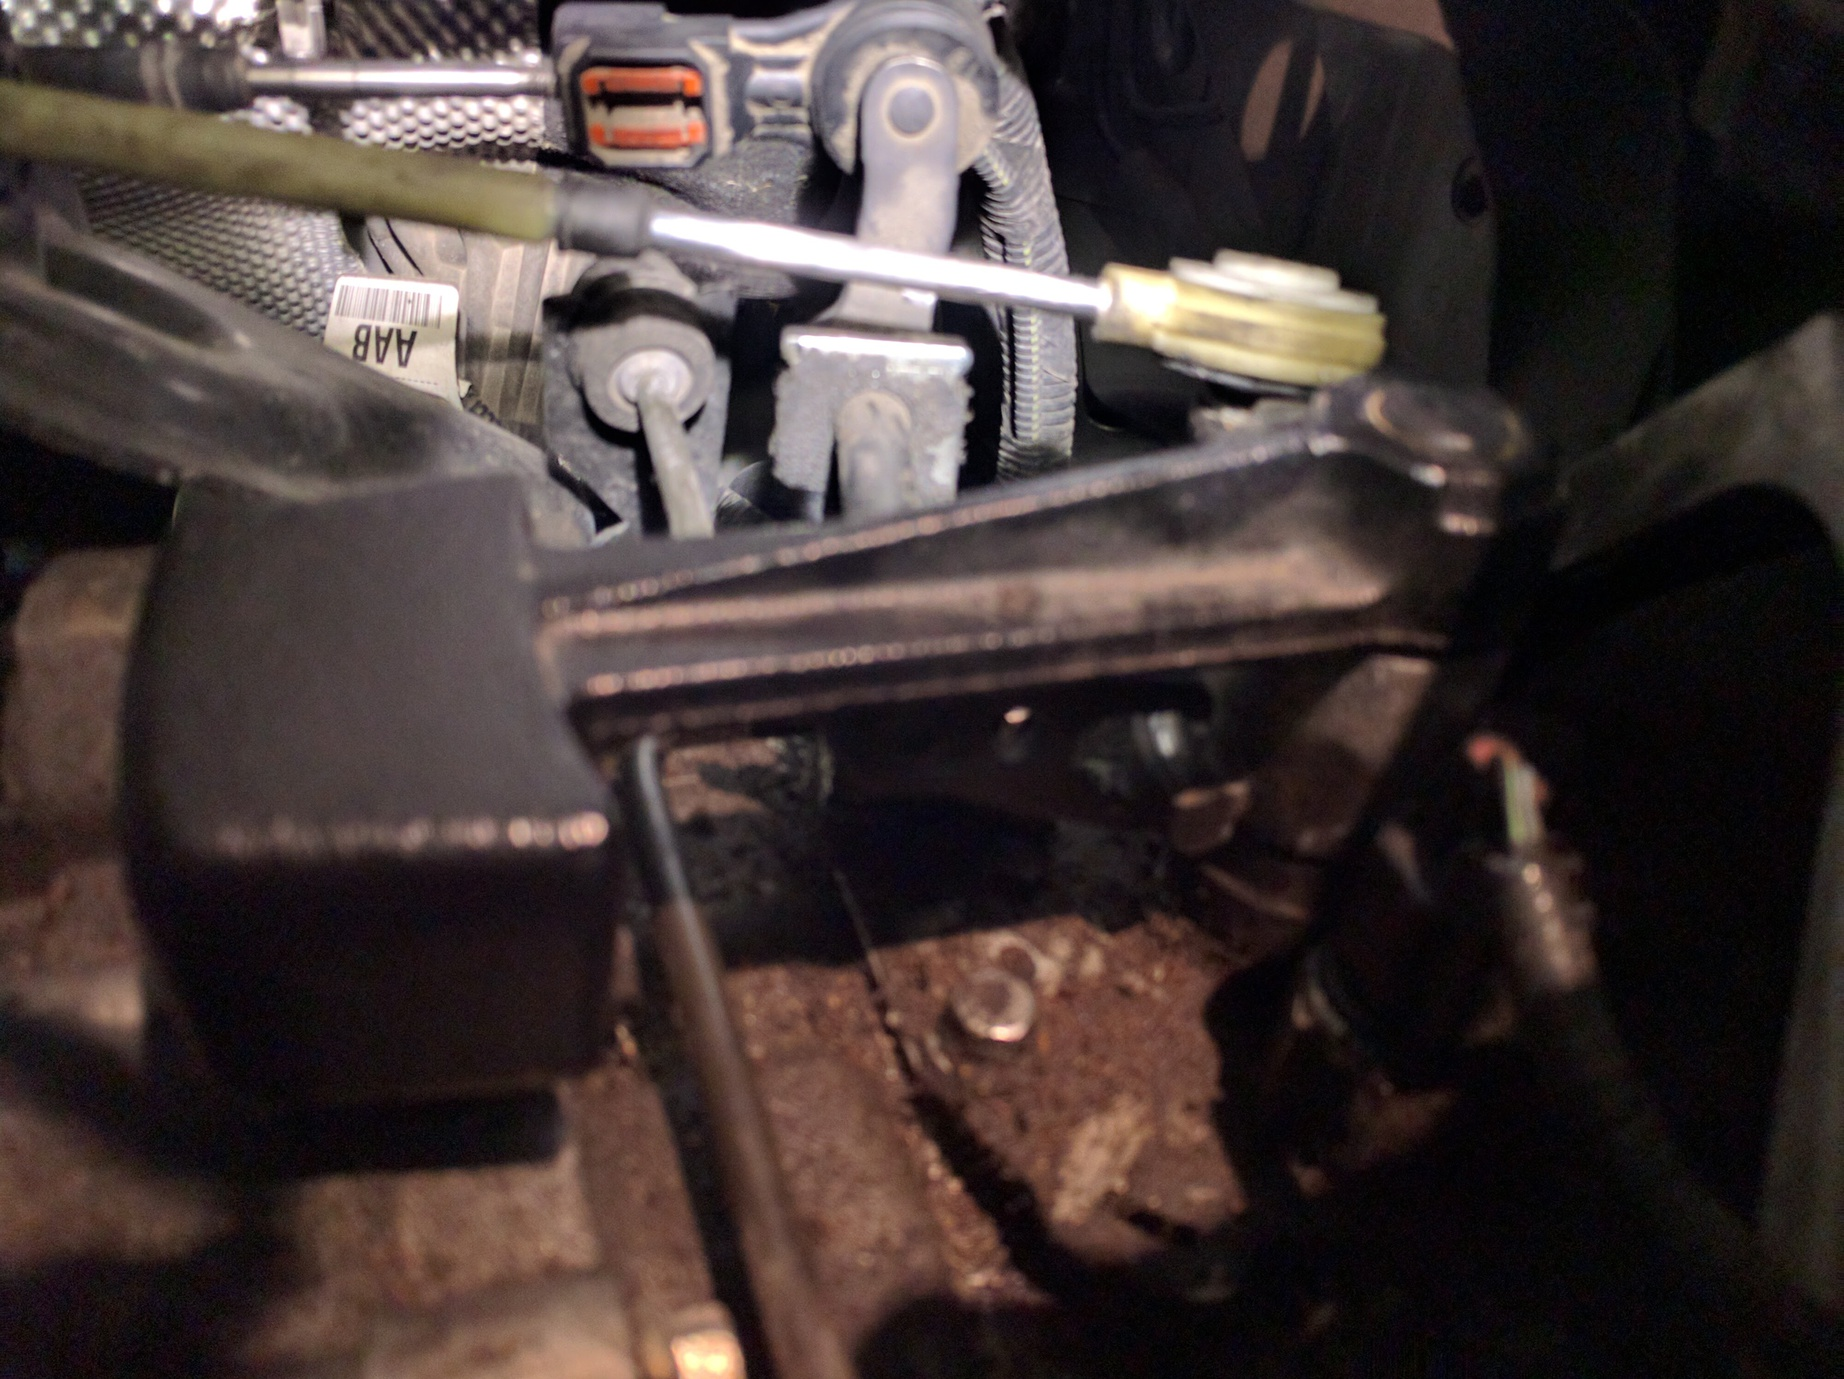 2012 Ford Focus 5mt transmission problems - Ford Focus Forum, Ford